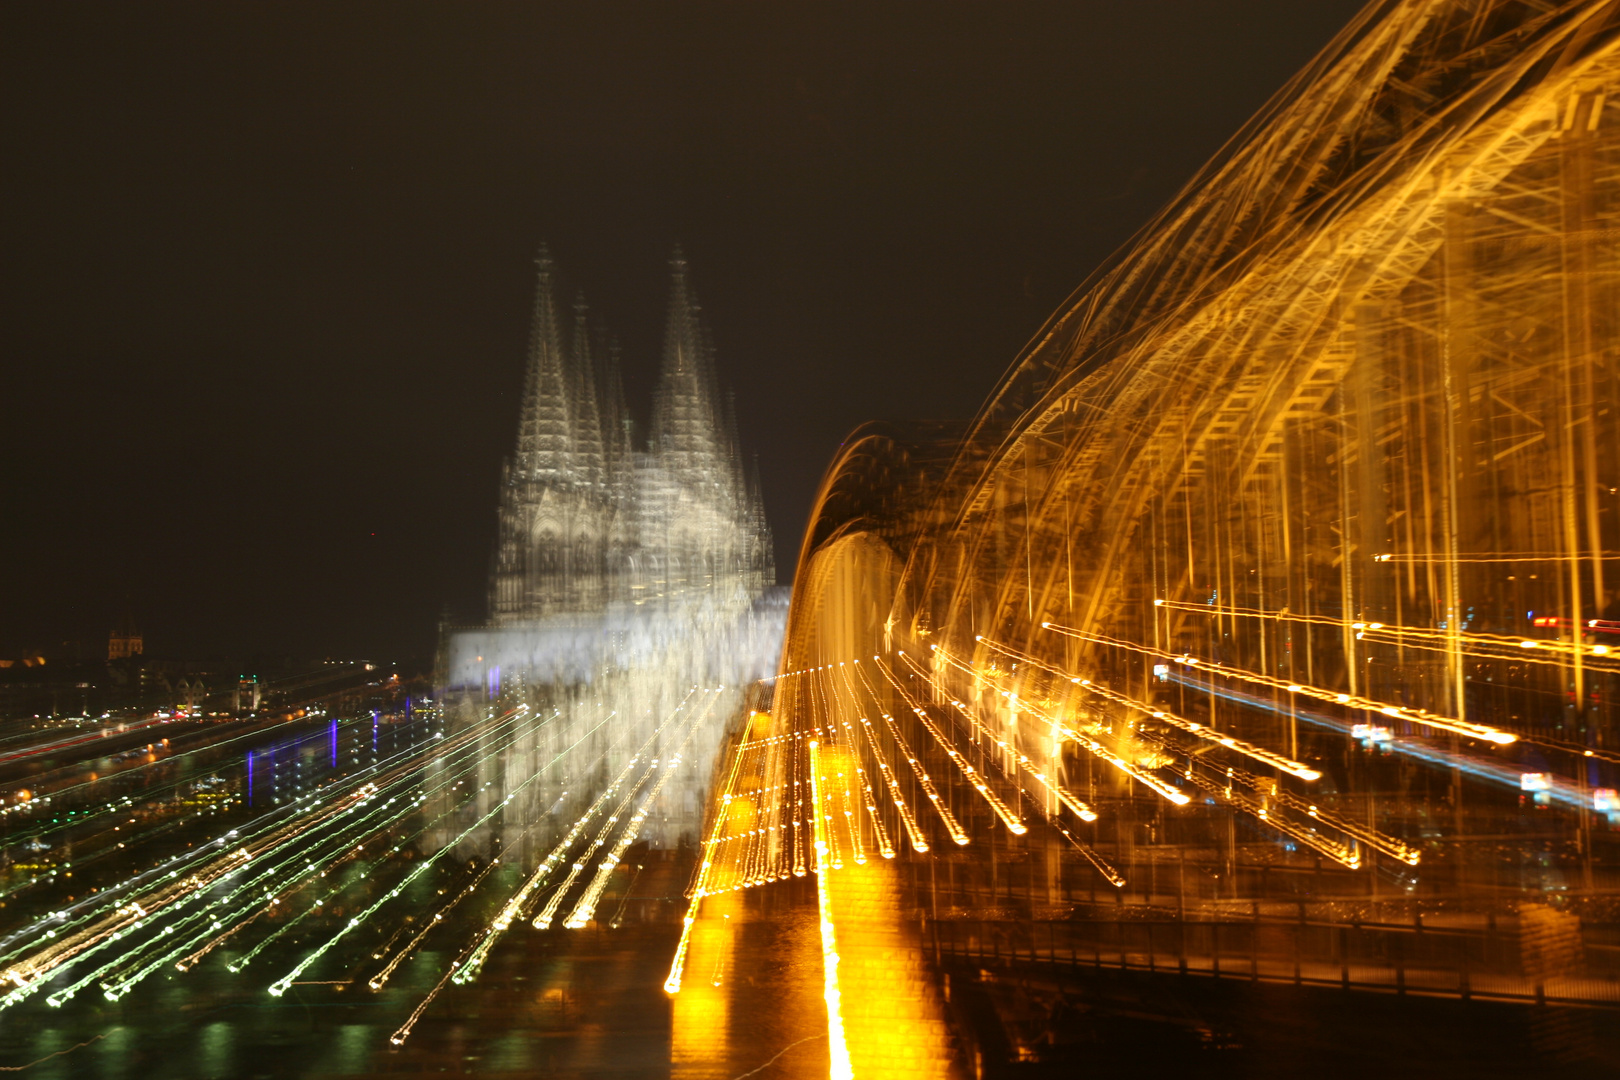 . . . cologne in motion . . .